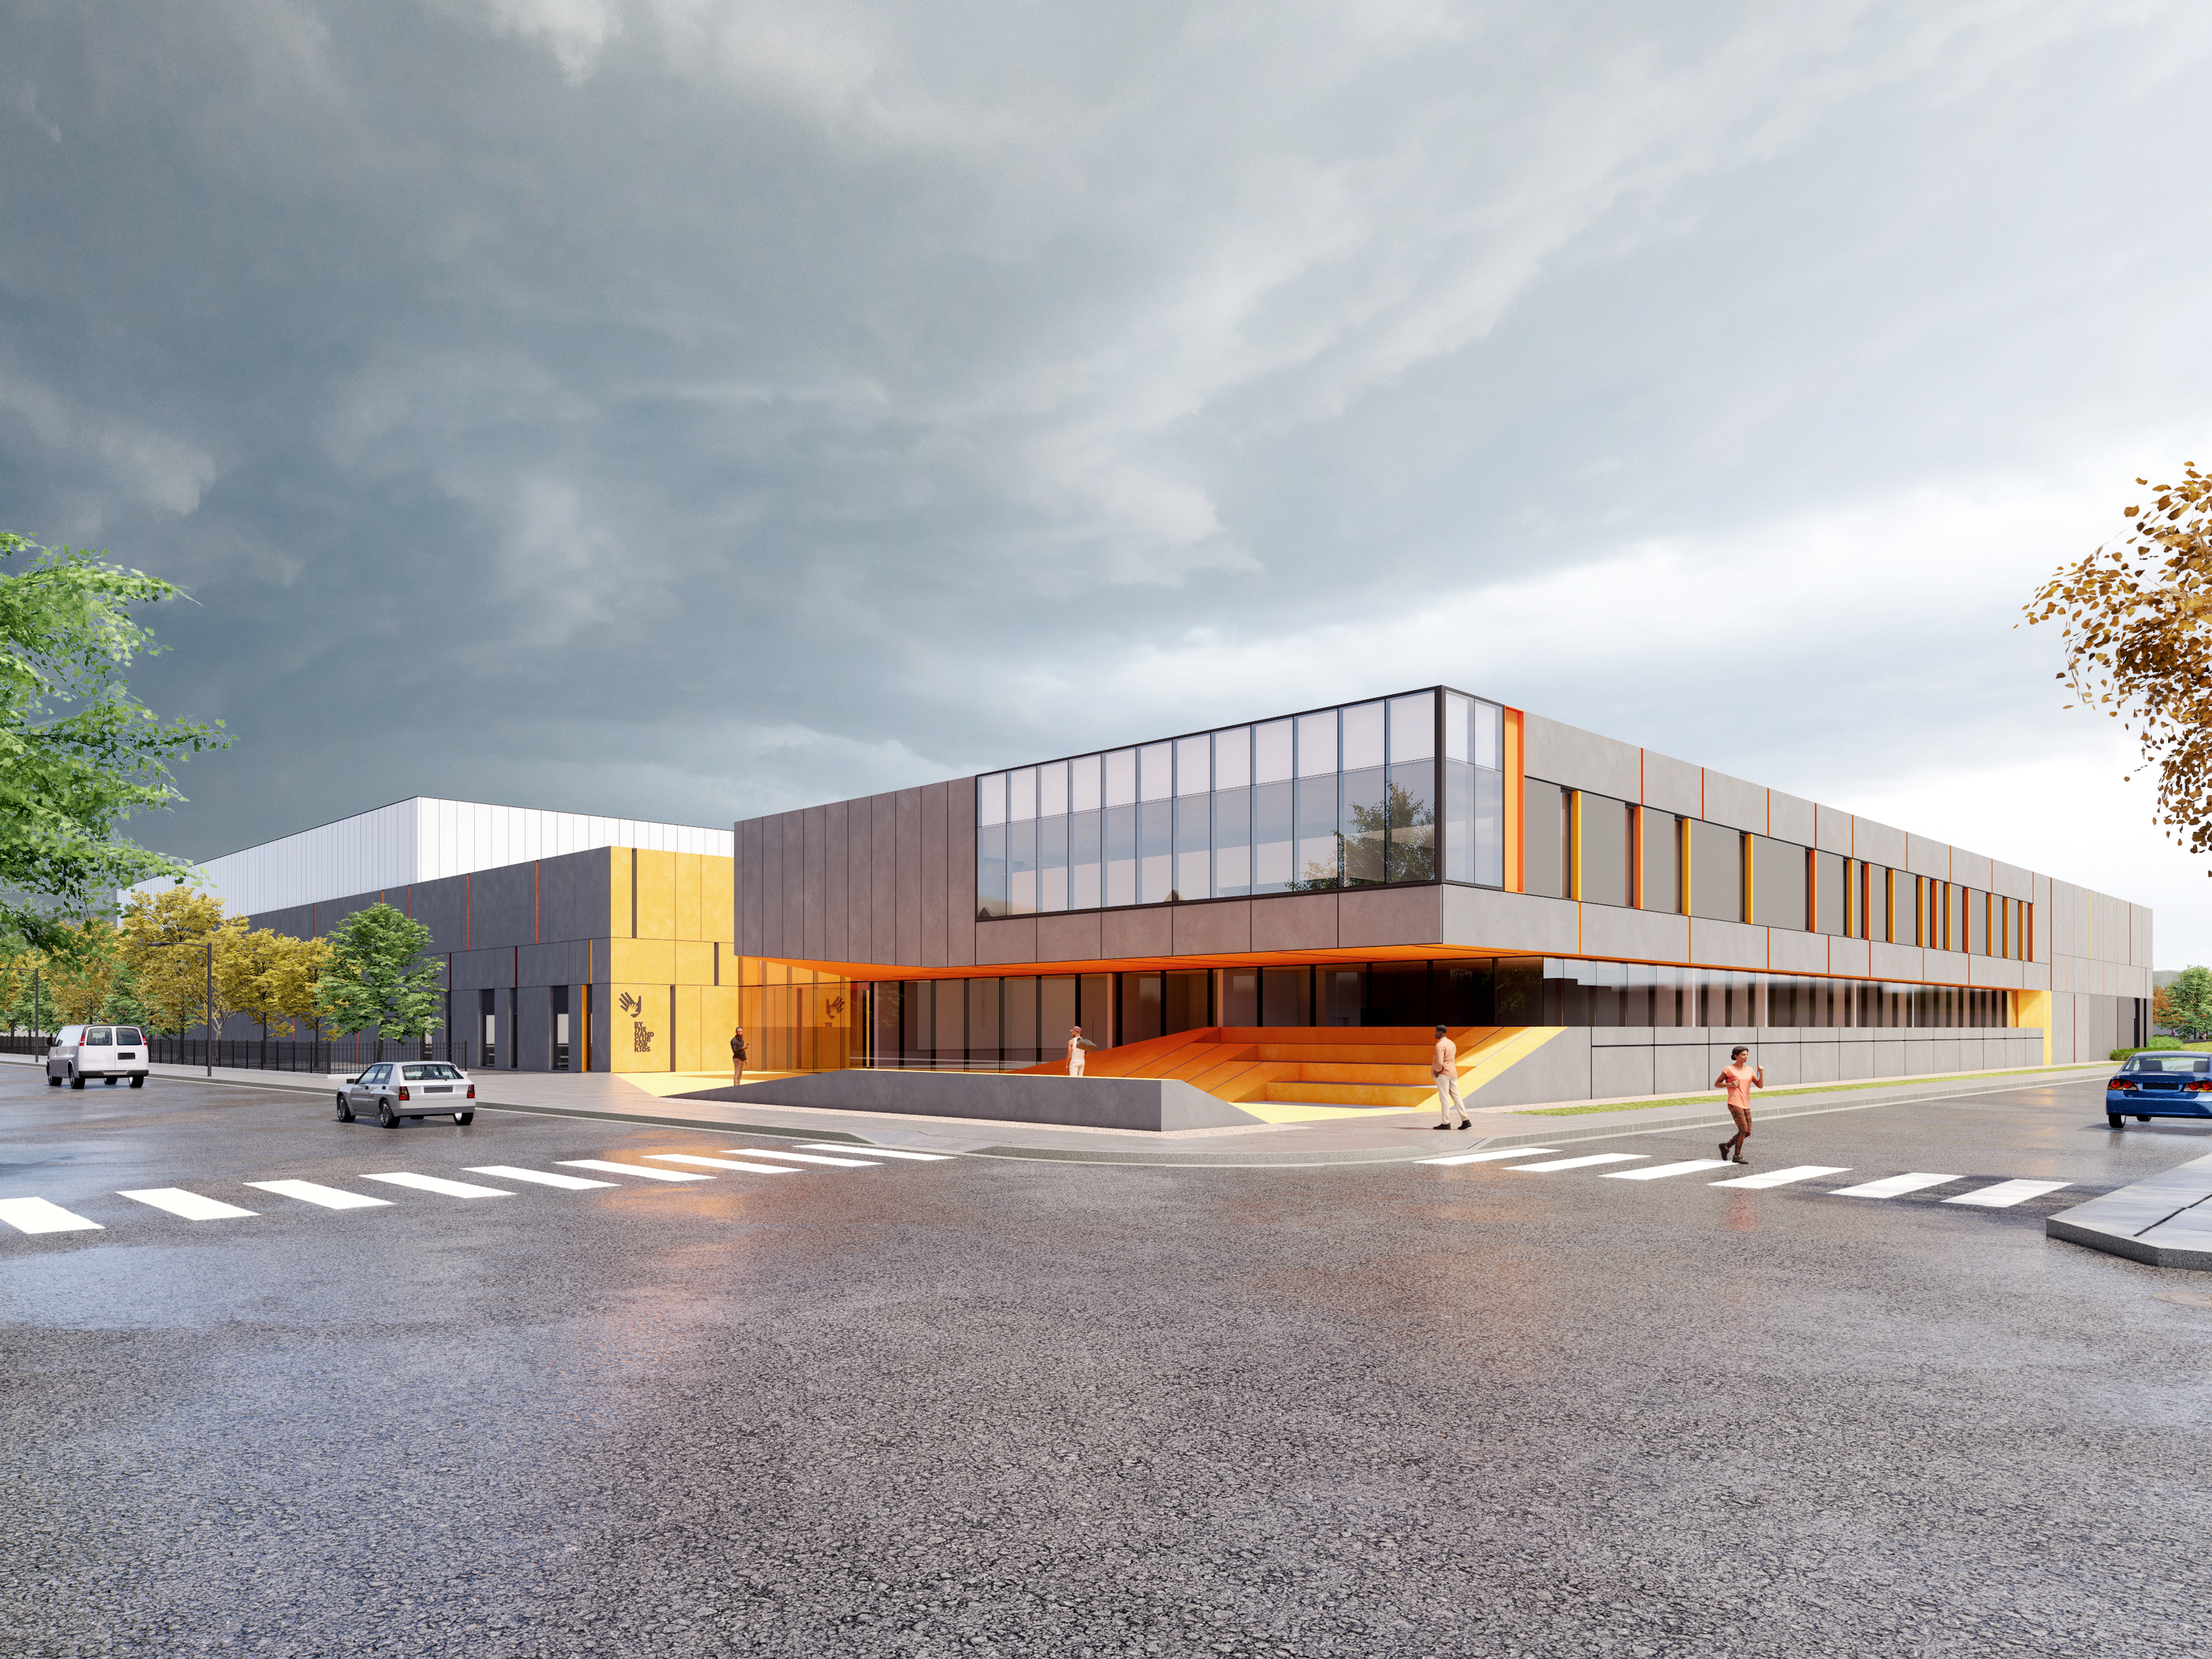 A rendering of a community center scheduled to break ground in the North Austin neighborhood in June.